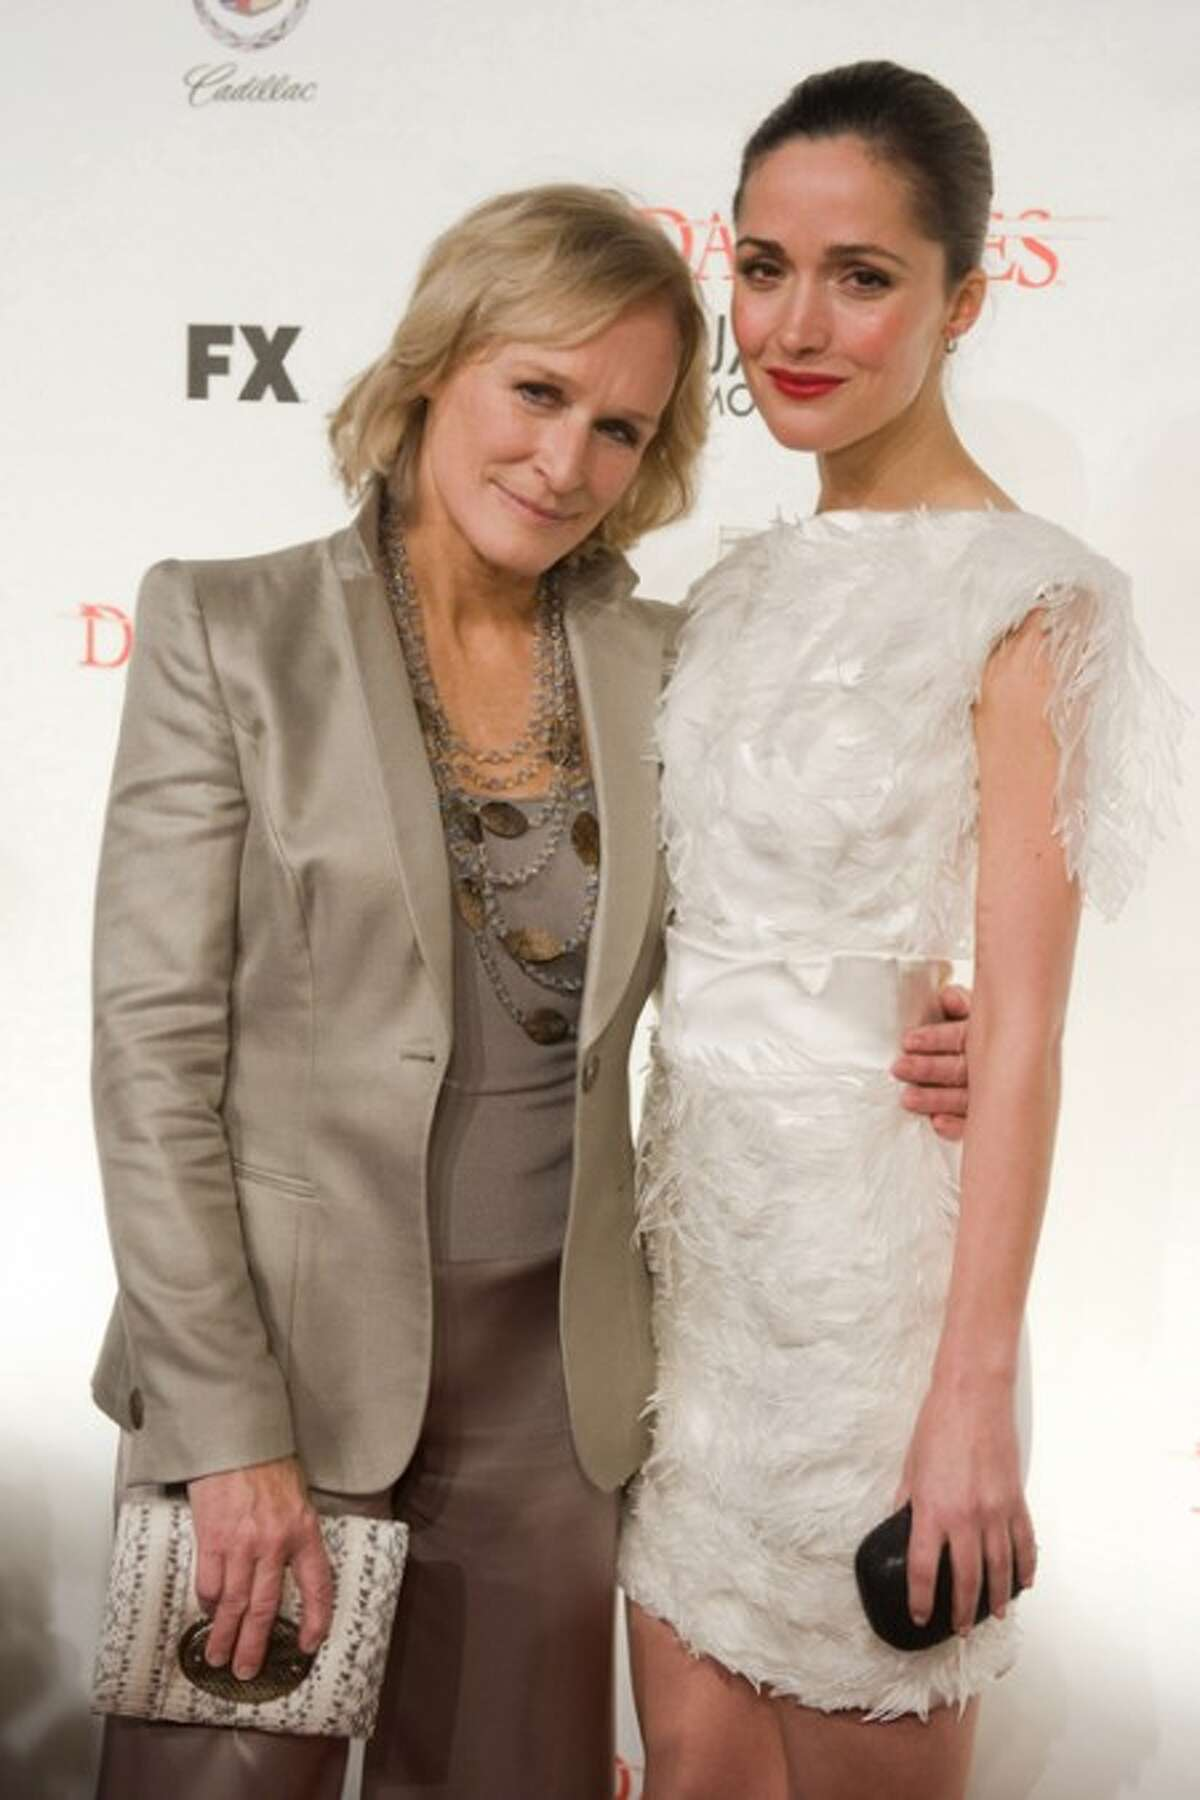 """FILE - In this Jan. 19, 2010 file photo, Glenn Close, left, and Rose Byrne attend the premiere screening for season three of FX''s legal thriller """"Damages"""" in New York. (AP Photo/Charles Sykes, file)"""